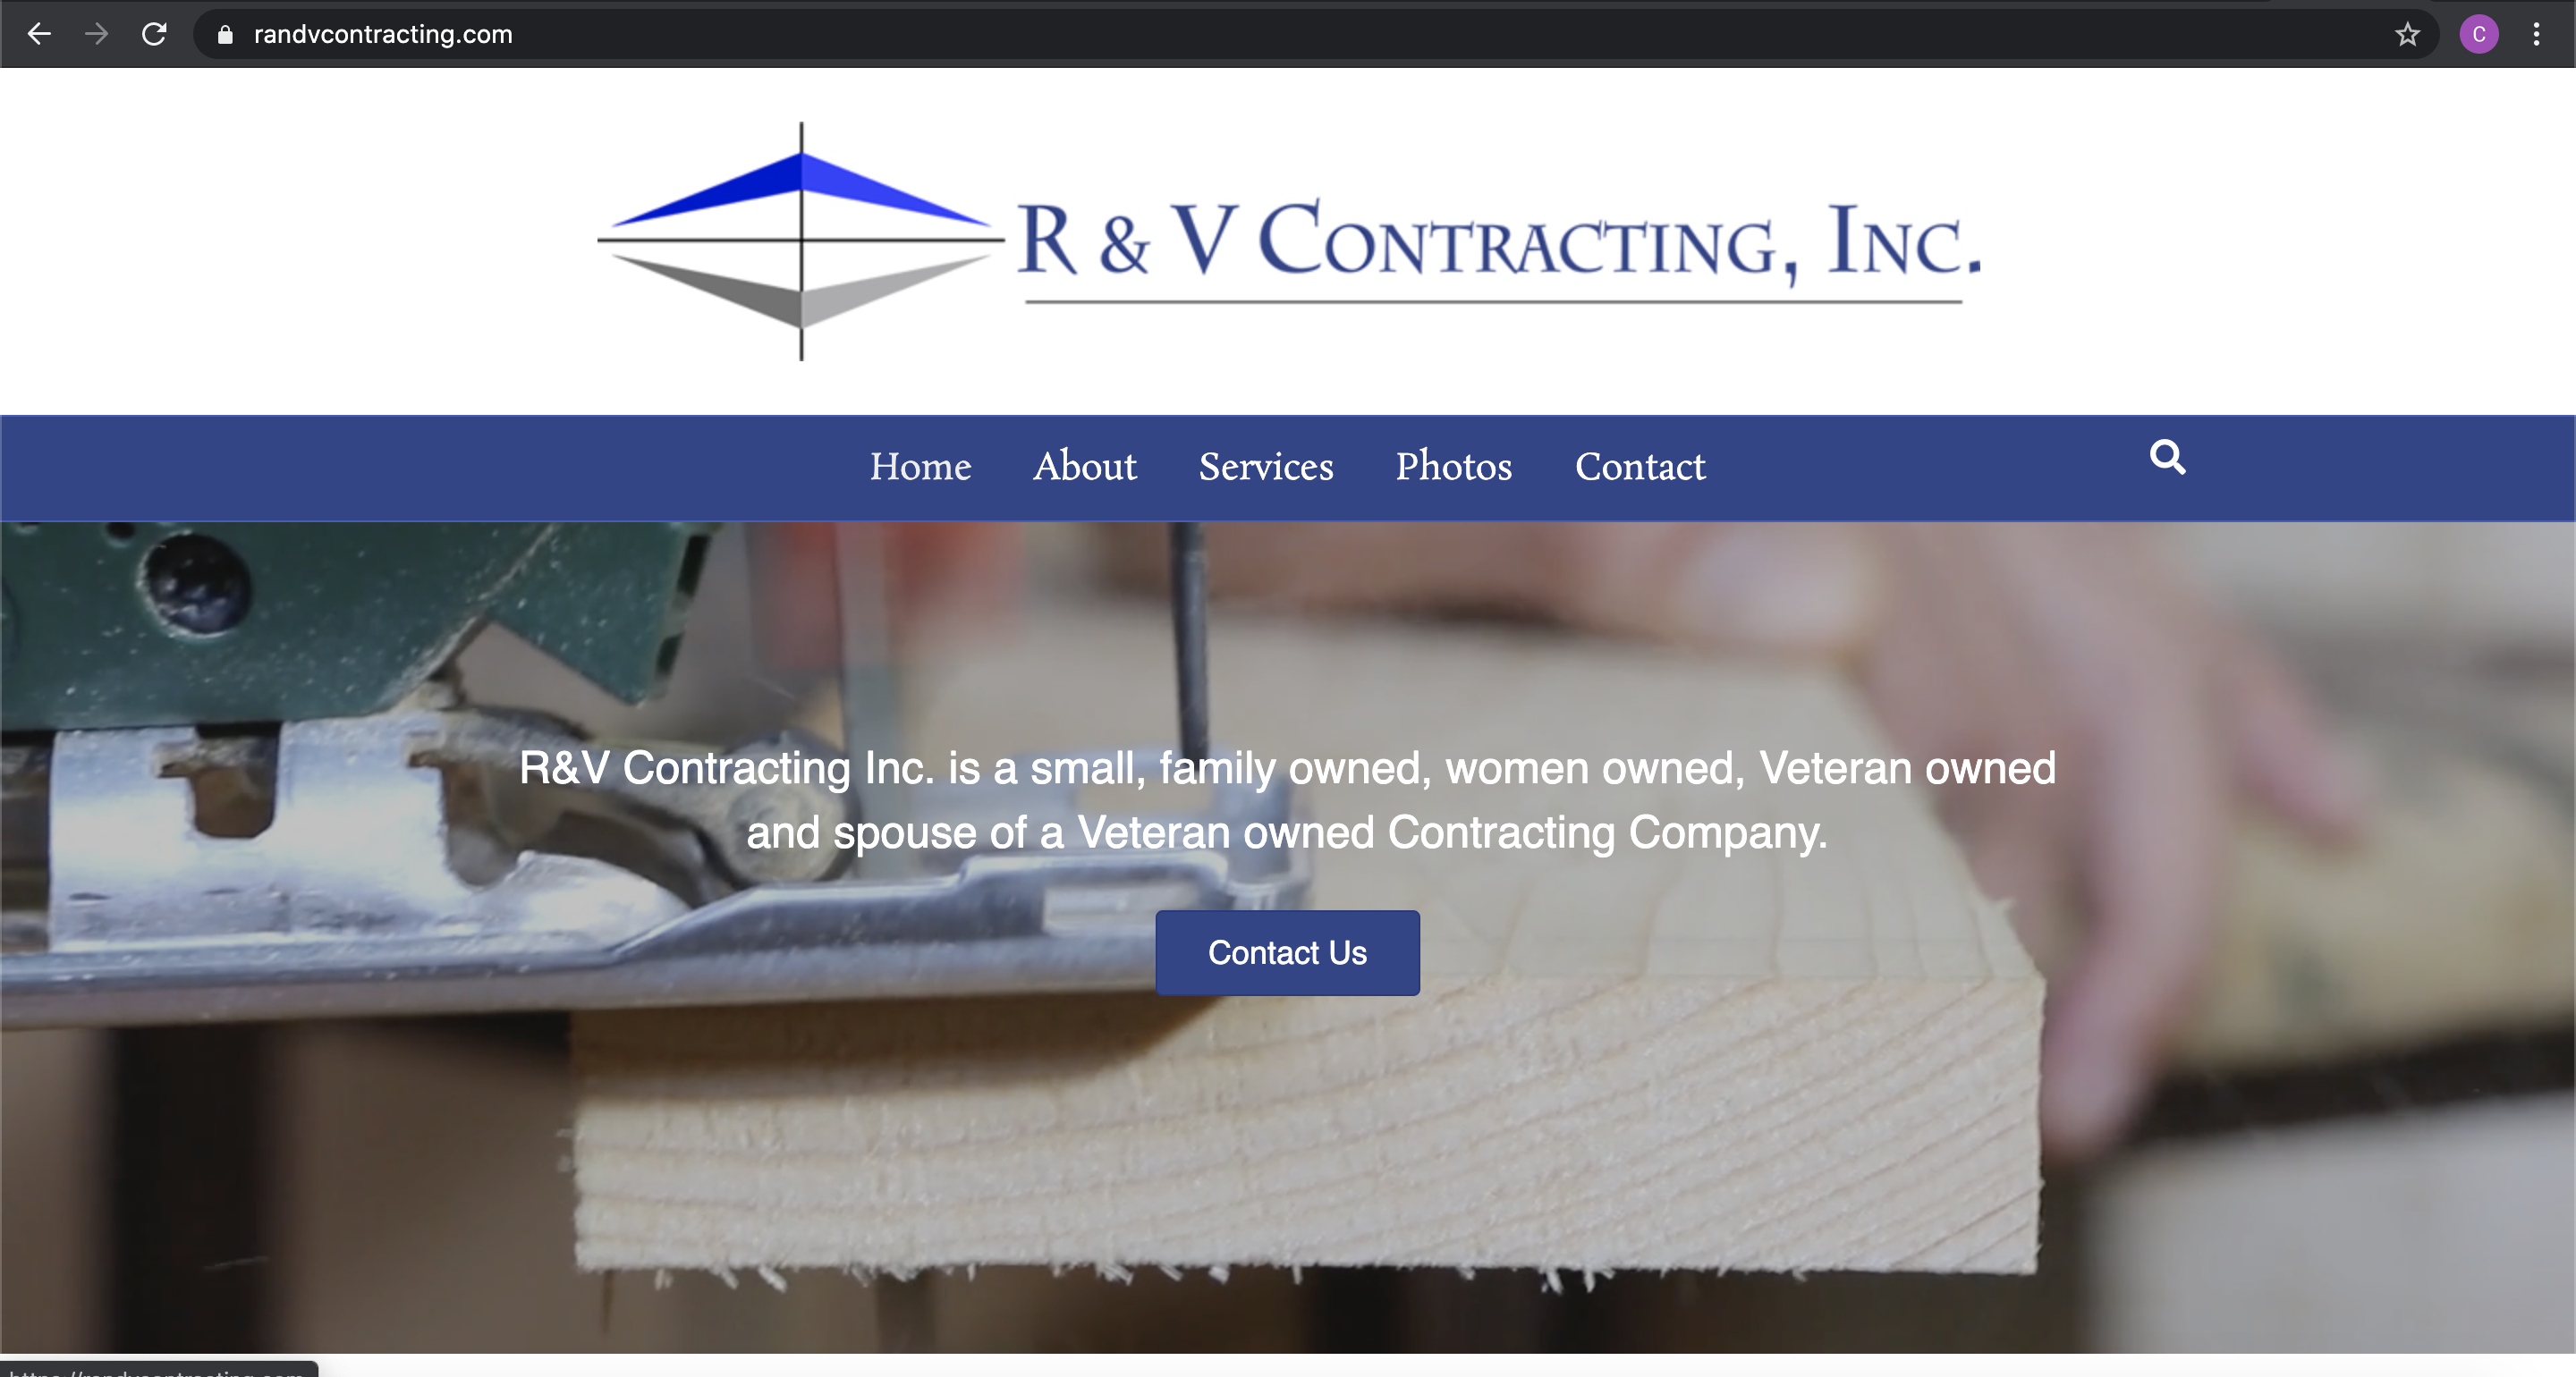 R & V Contracting